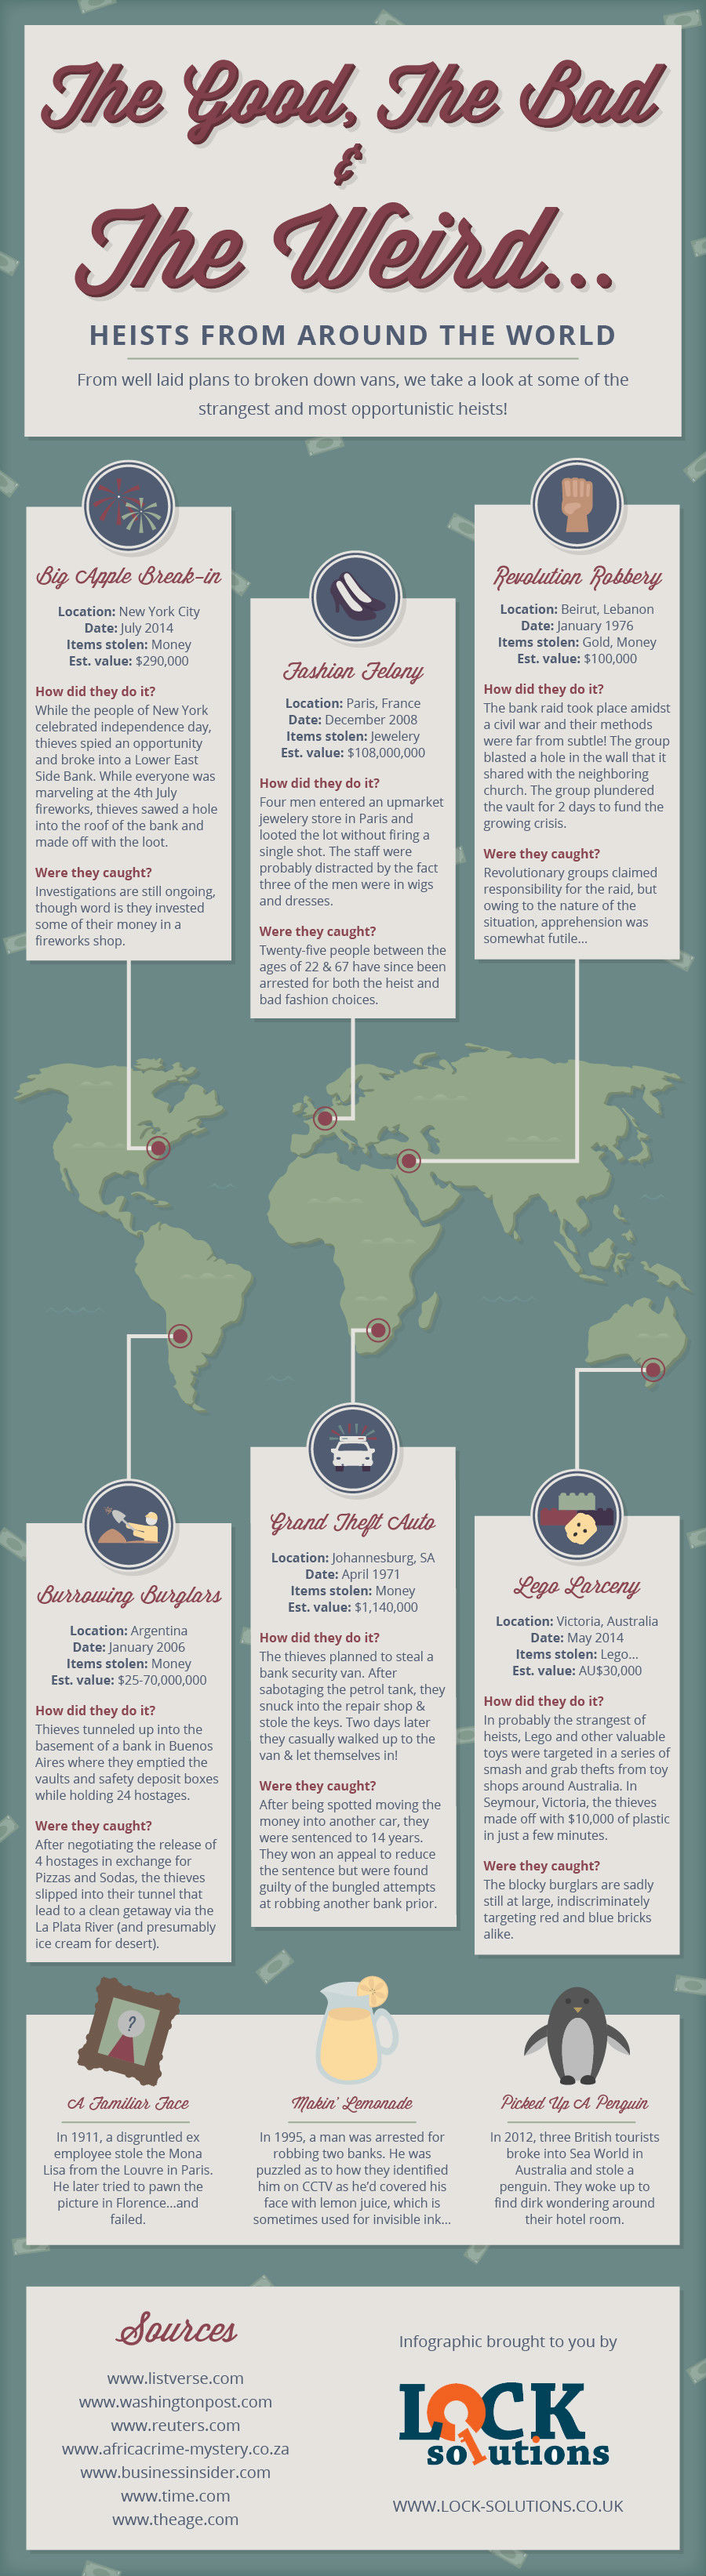 Heists From Around The World [Infographic]